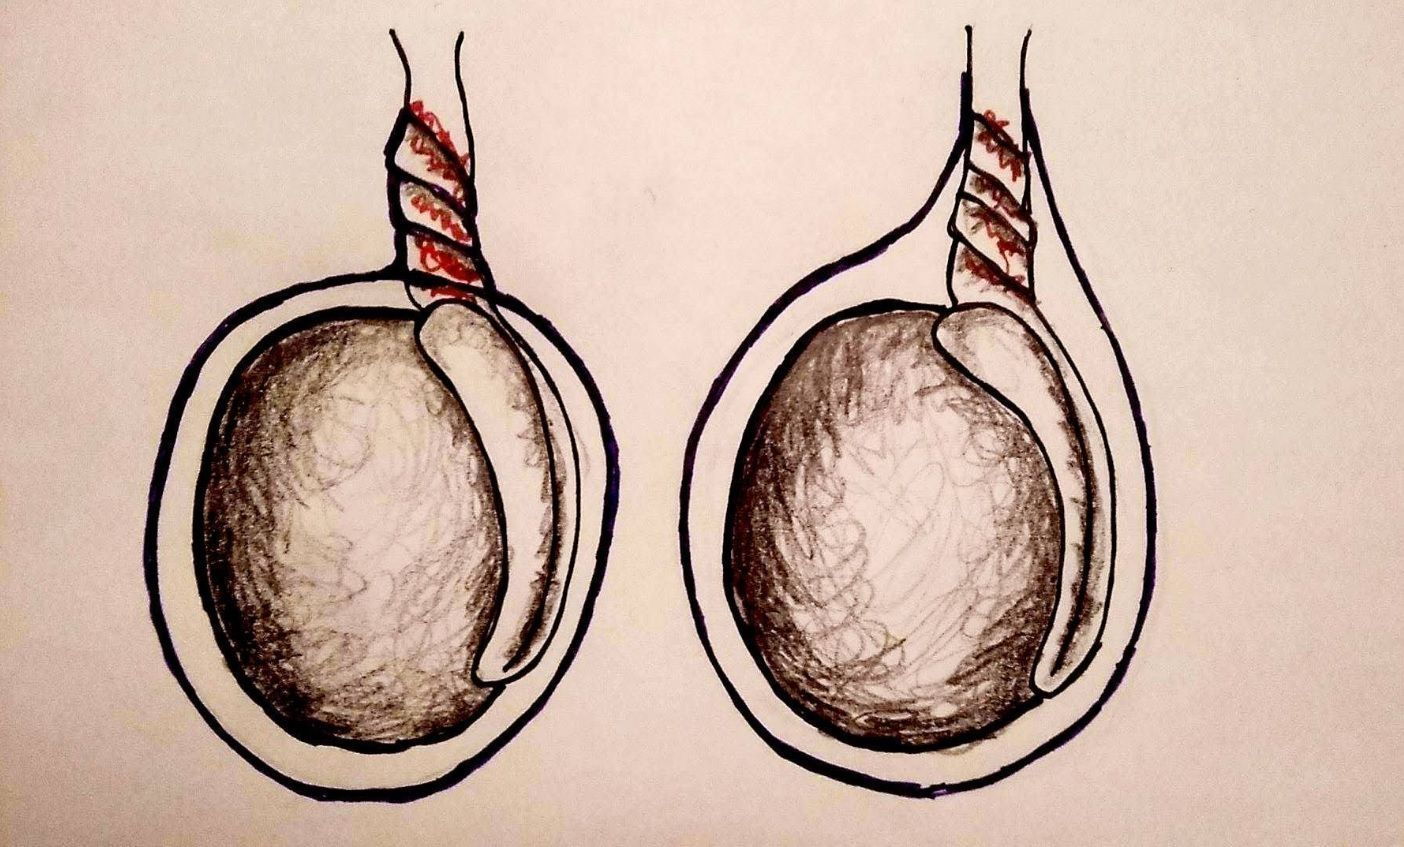 Two different types of testicular torsion: extravaginal on the left, intravaginal on the right.